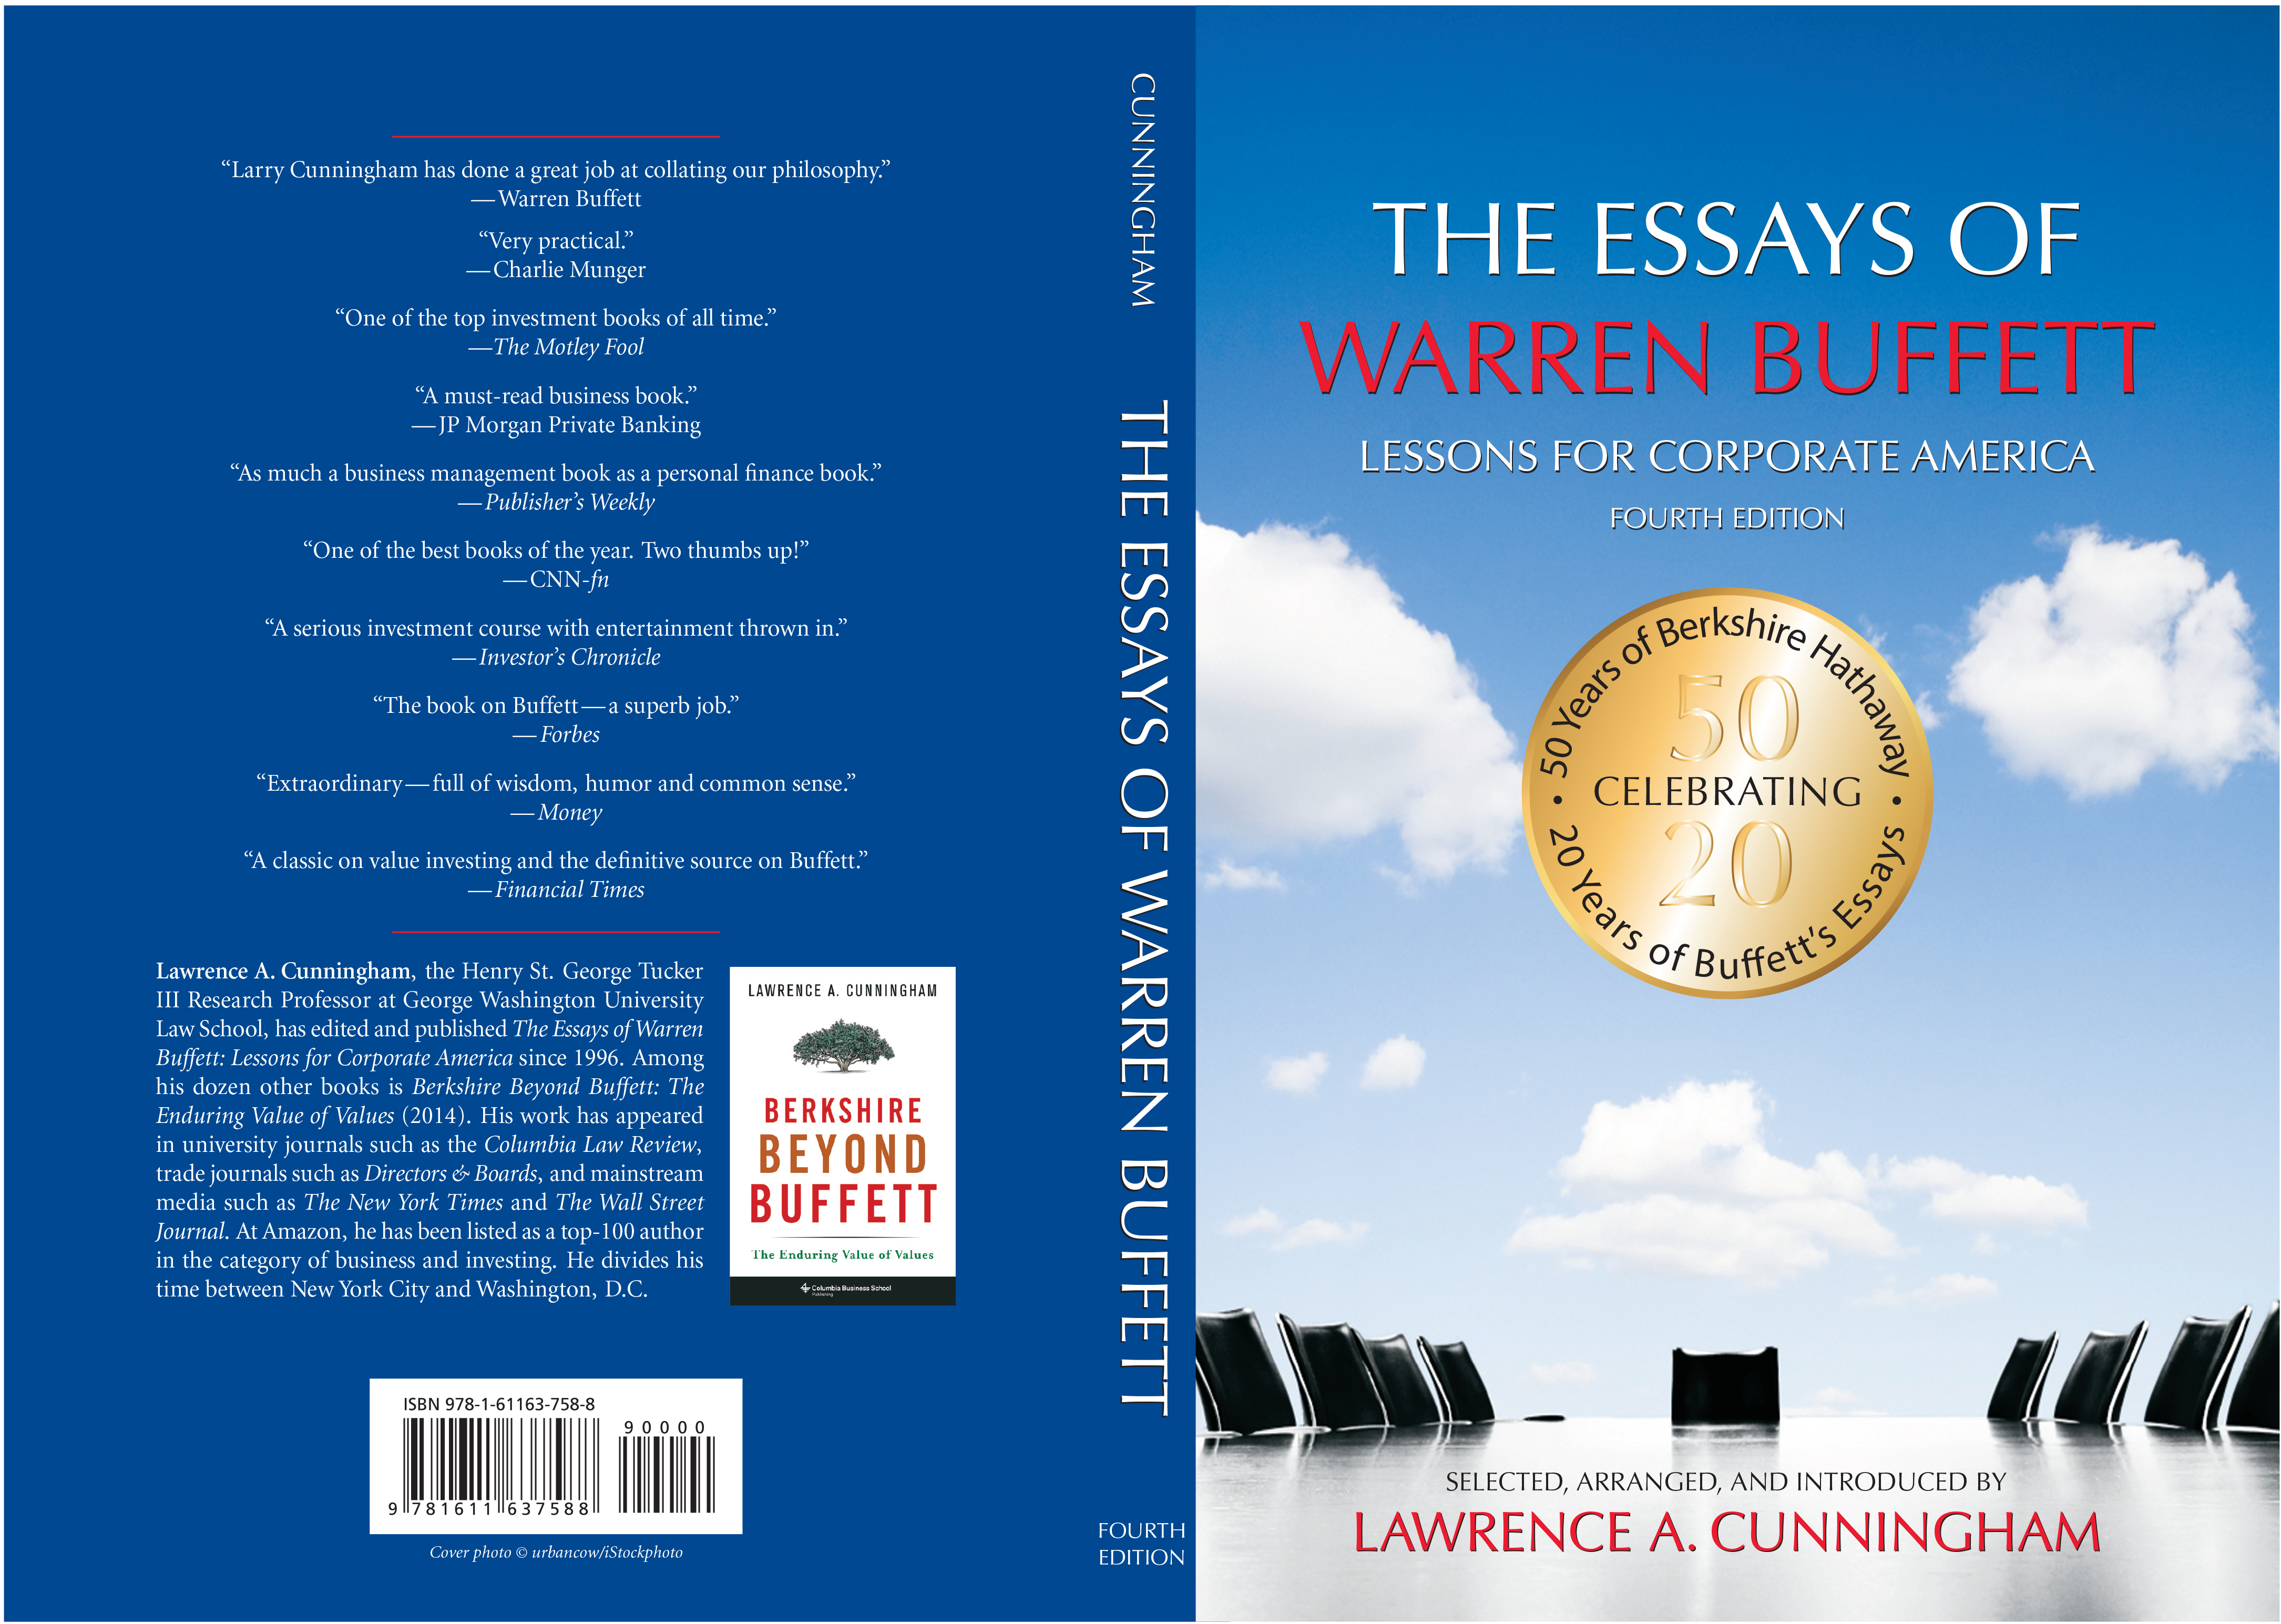 001 The Essays Of Warren Buffett Pdf Essay Best 4th Edition Lessons For Investors And Managers 2015 Free Full